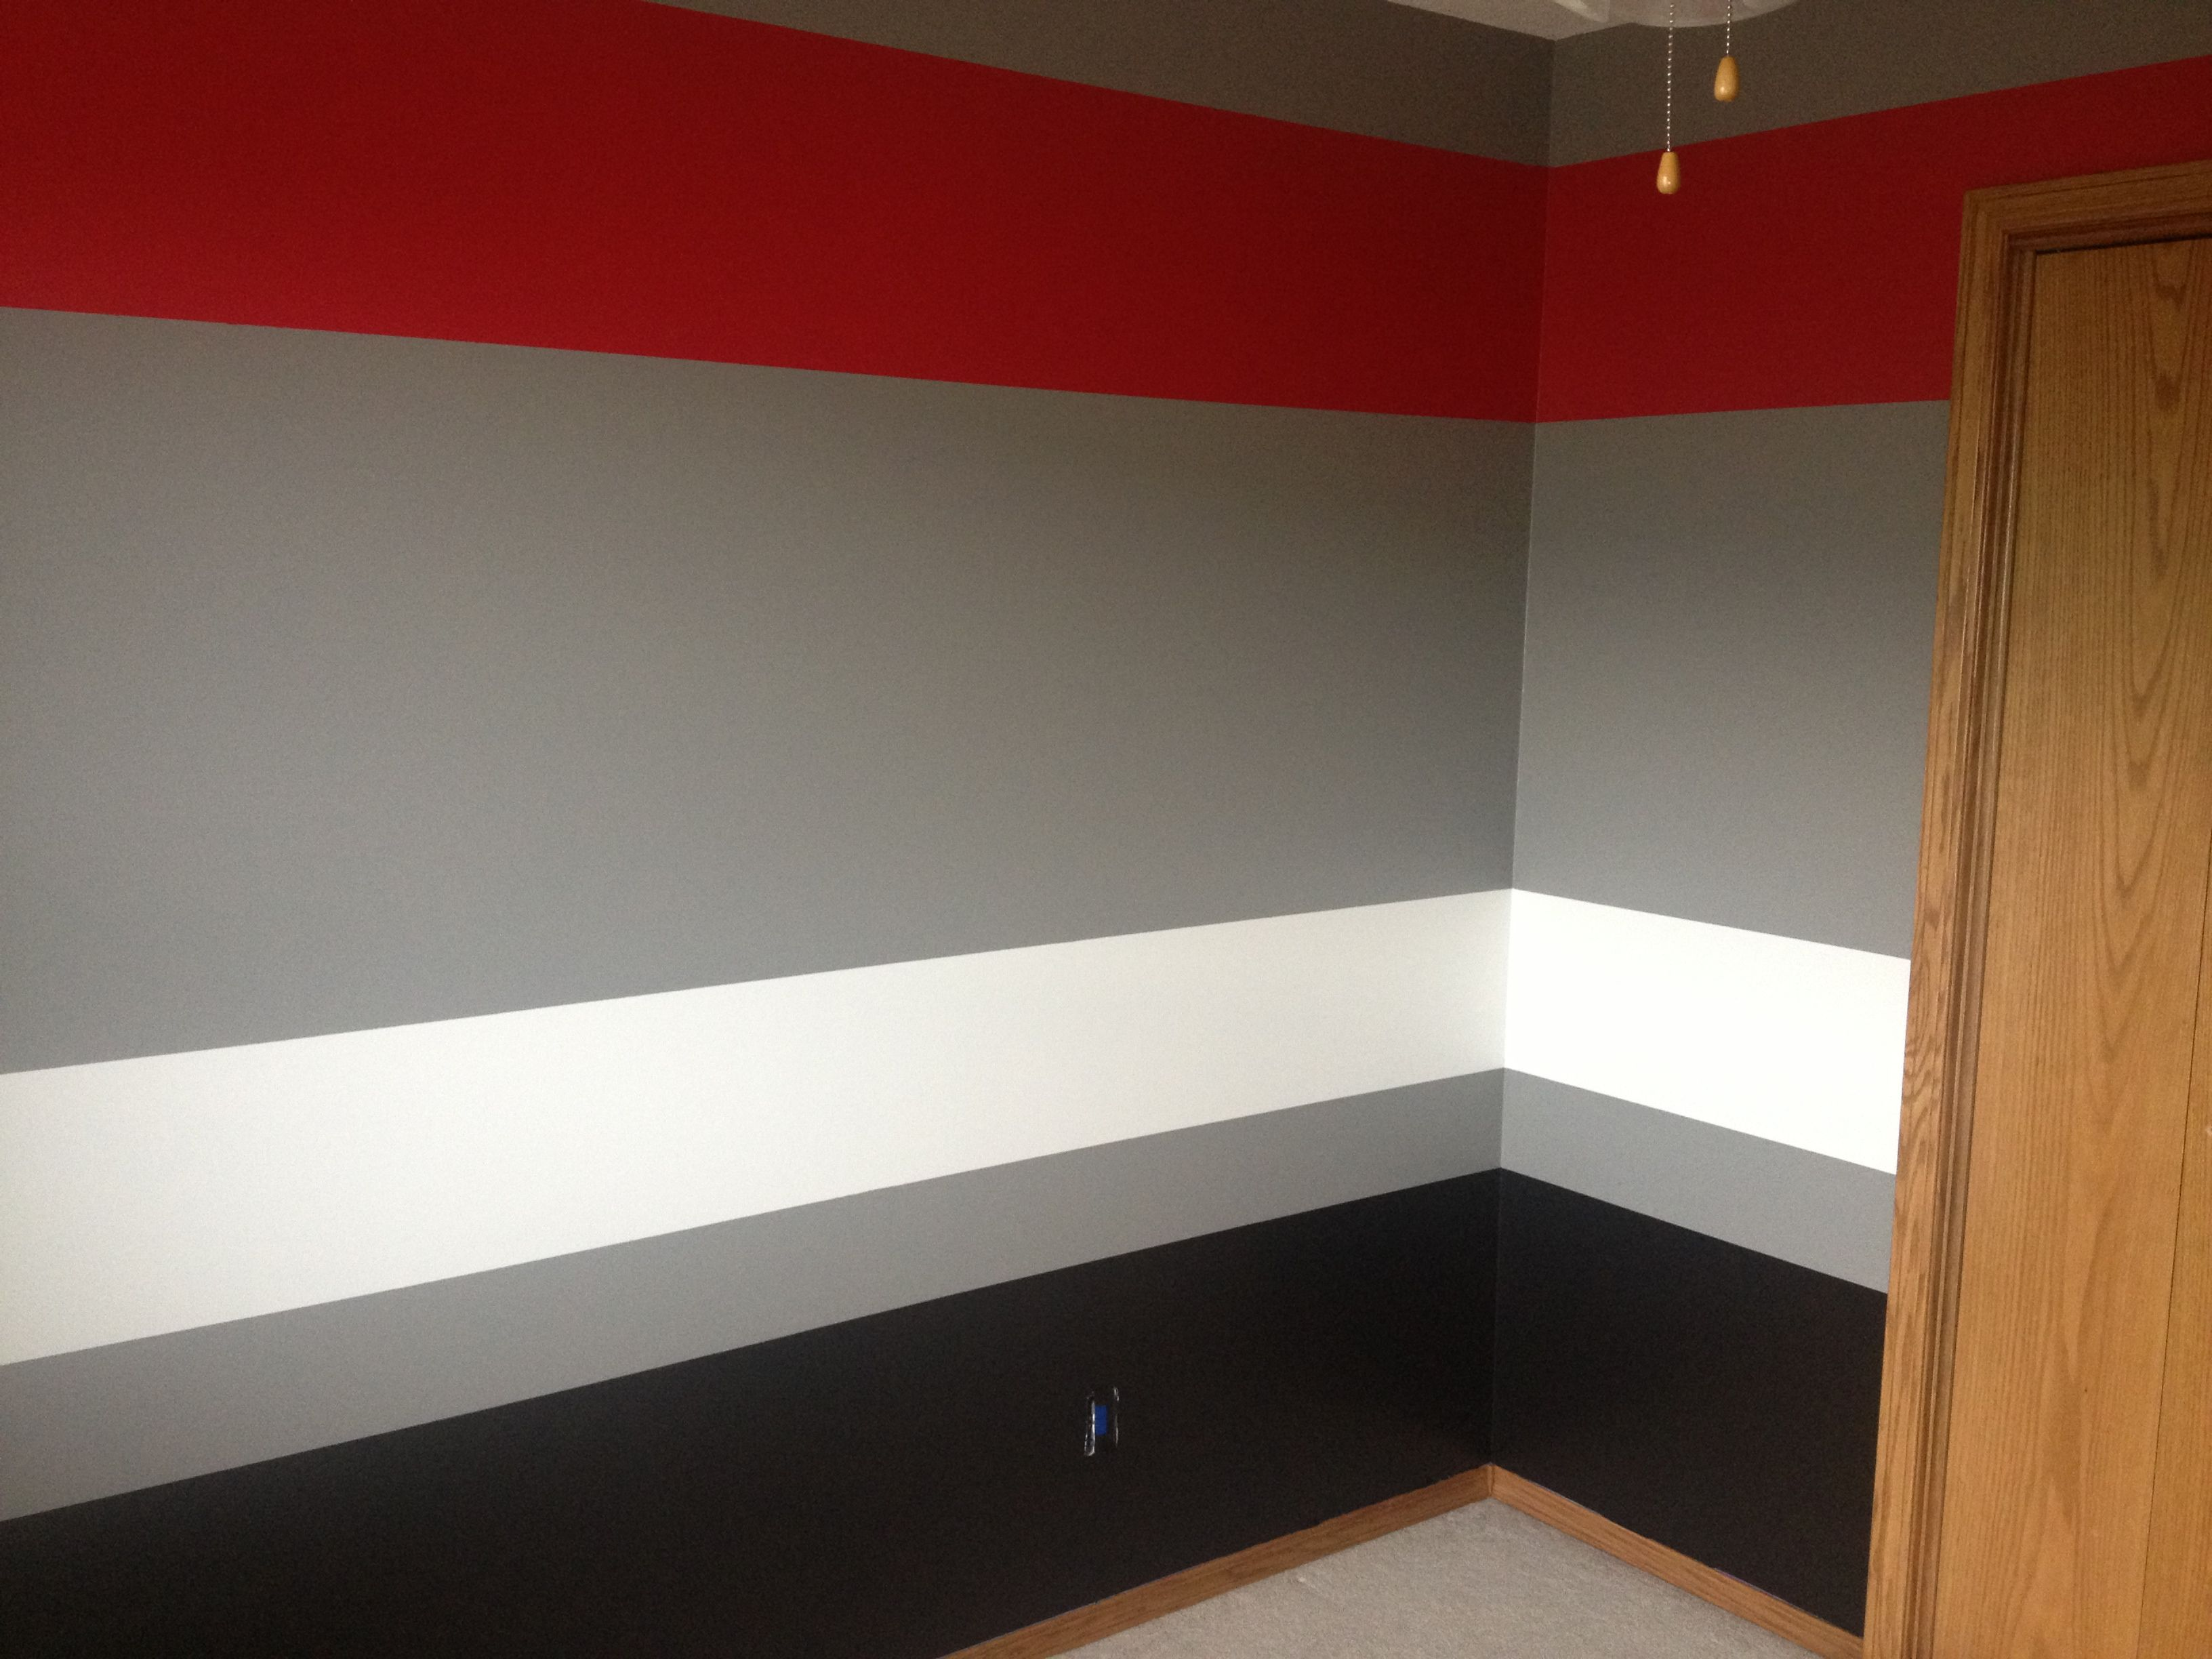 Bedroom colors red and black - Painted Room Grey Red White Black